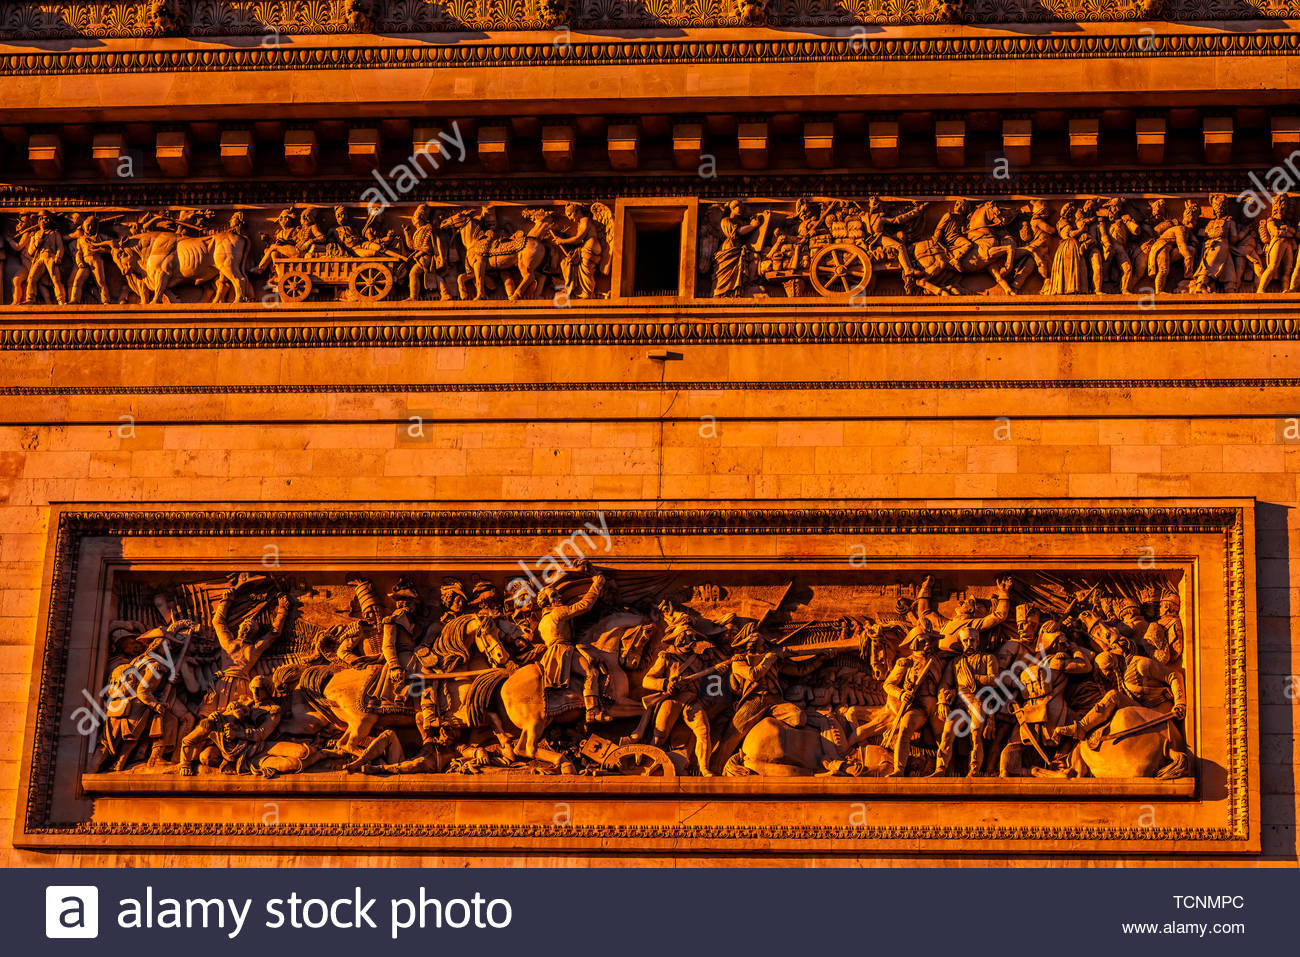 Architectural detail of the Arc de Triomphe (The Arc de Triomphe de l'Étoile) is one of the most famous monuments in Paris, France, standing at the we - Stock Image